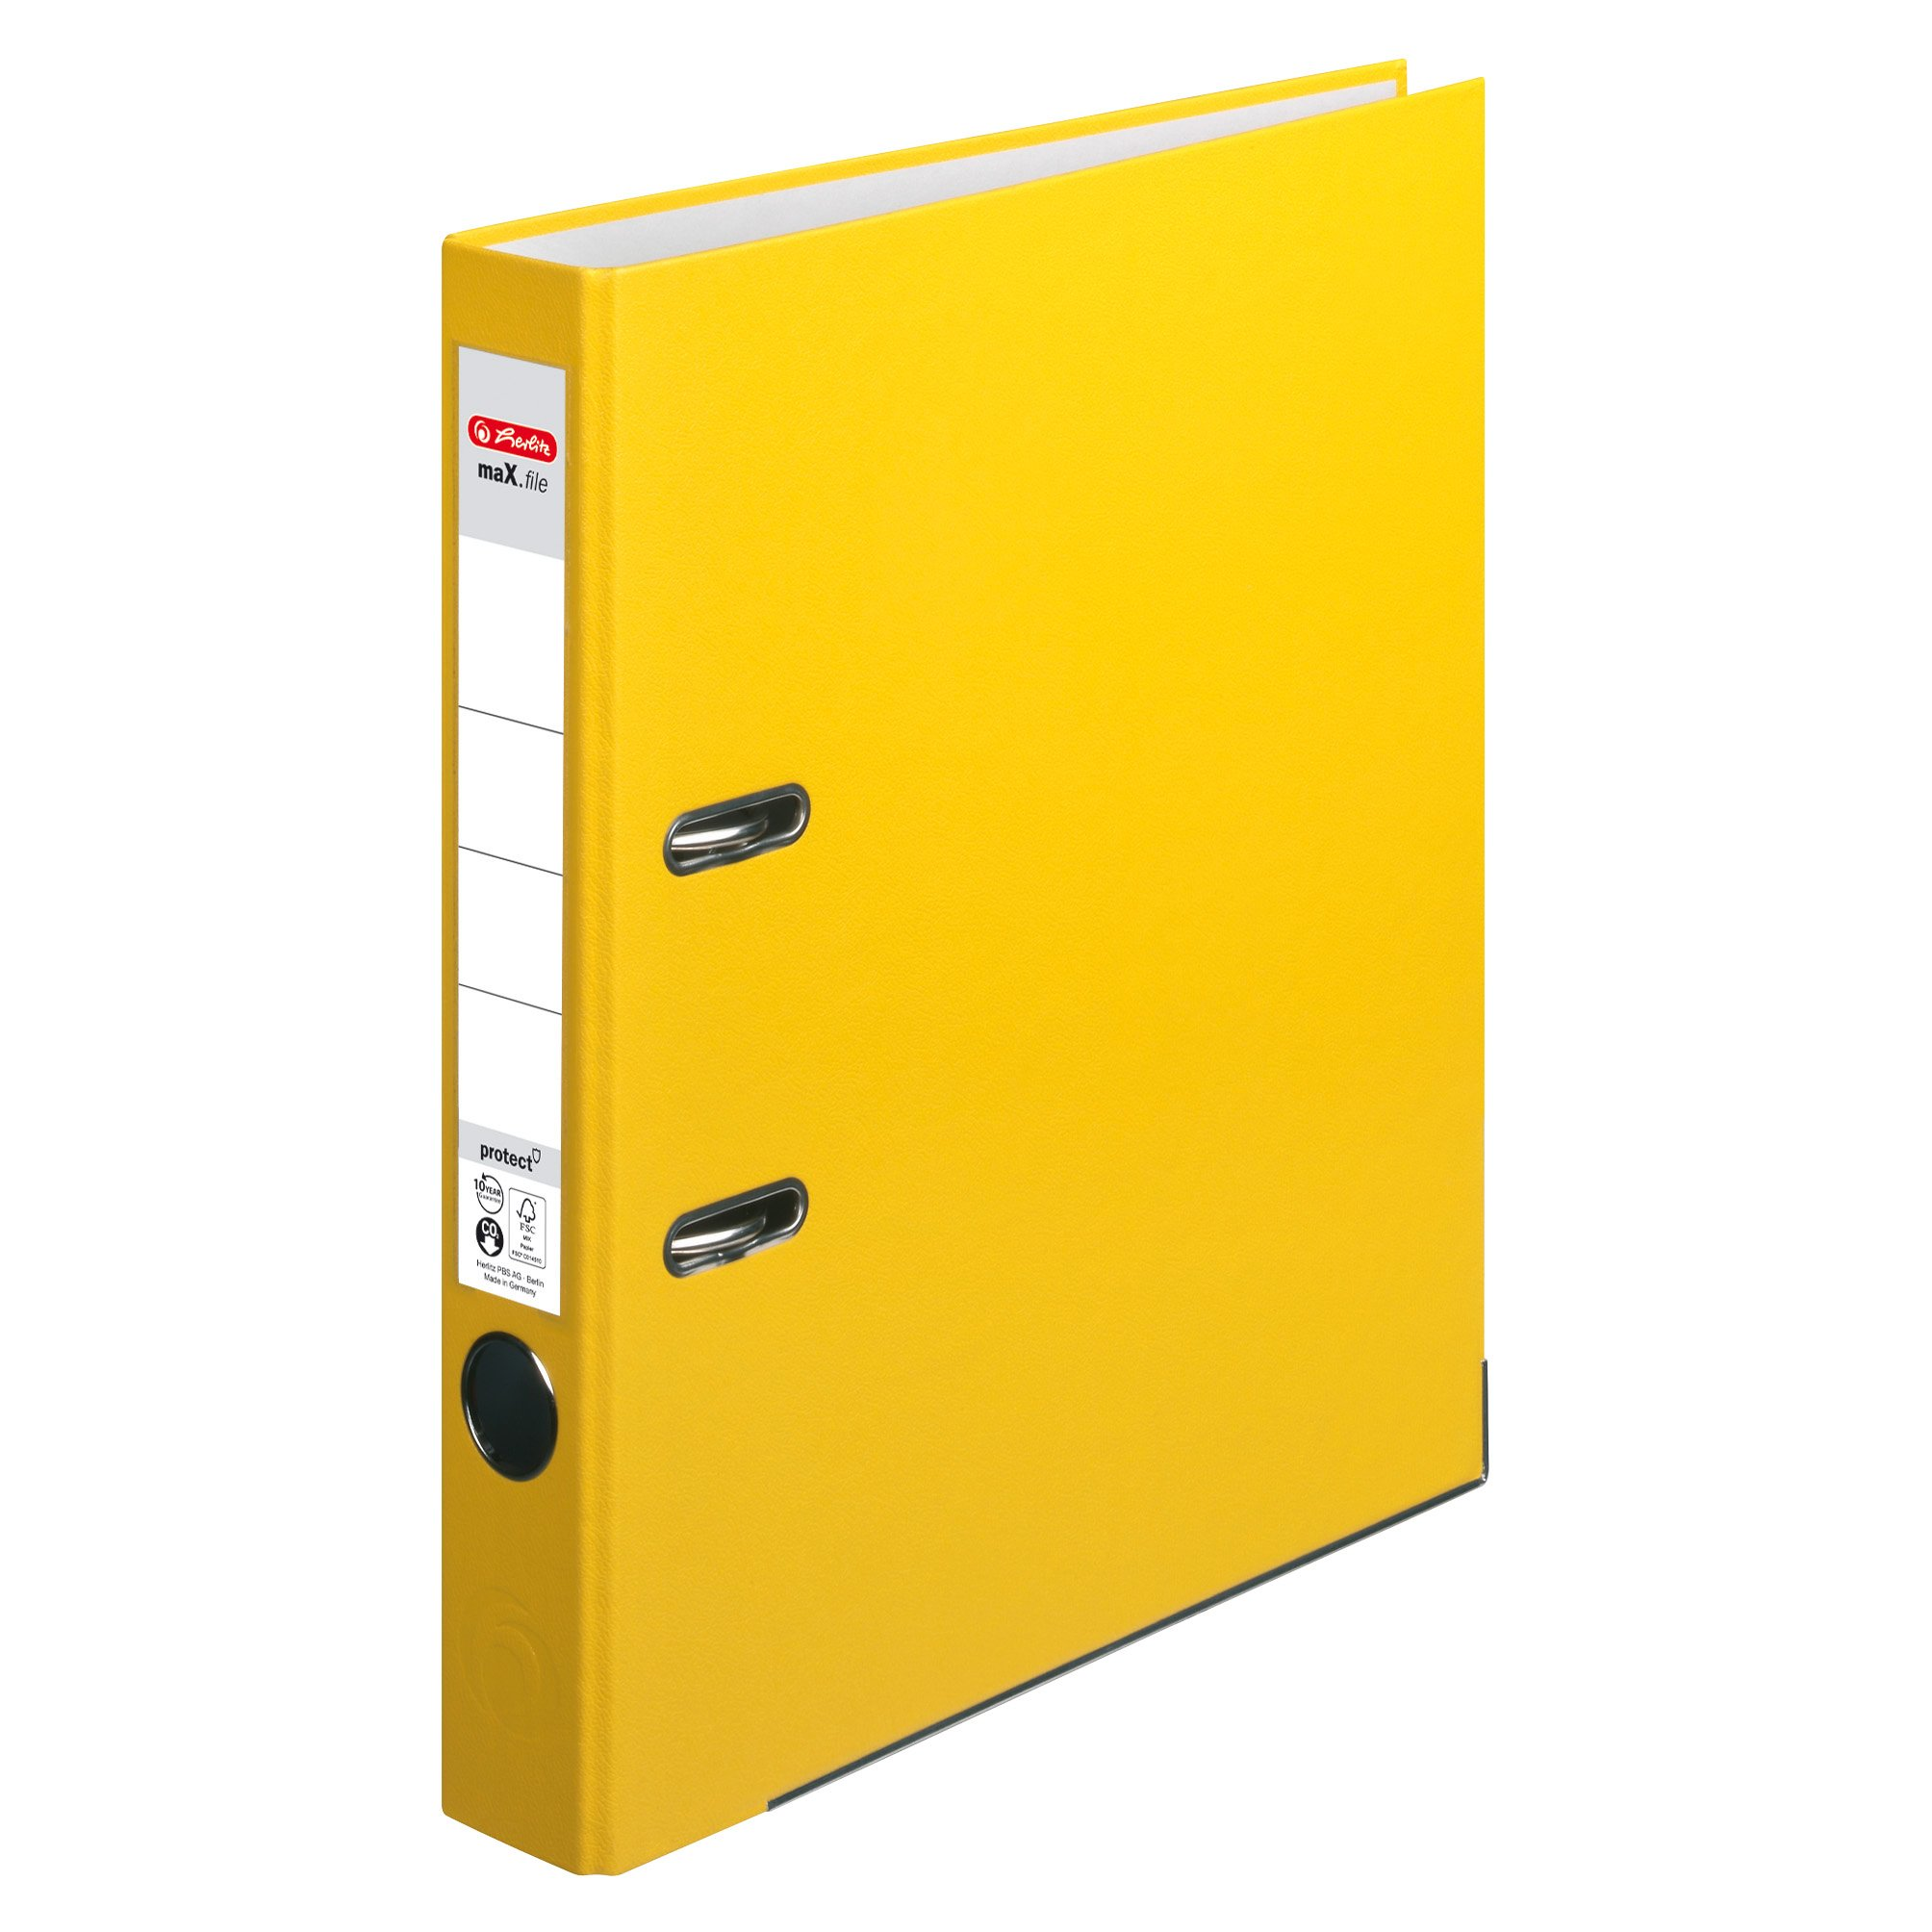 Herlitz max. file Protect A4 5 cm with Slip-In Spine Label 5450309 Folder Red yellow